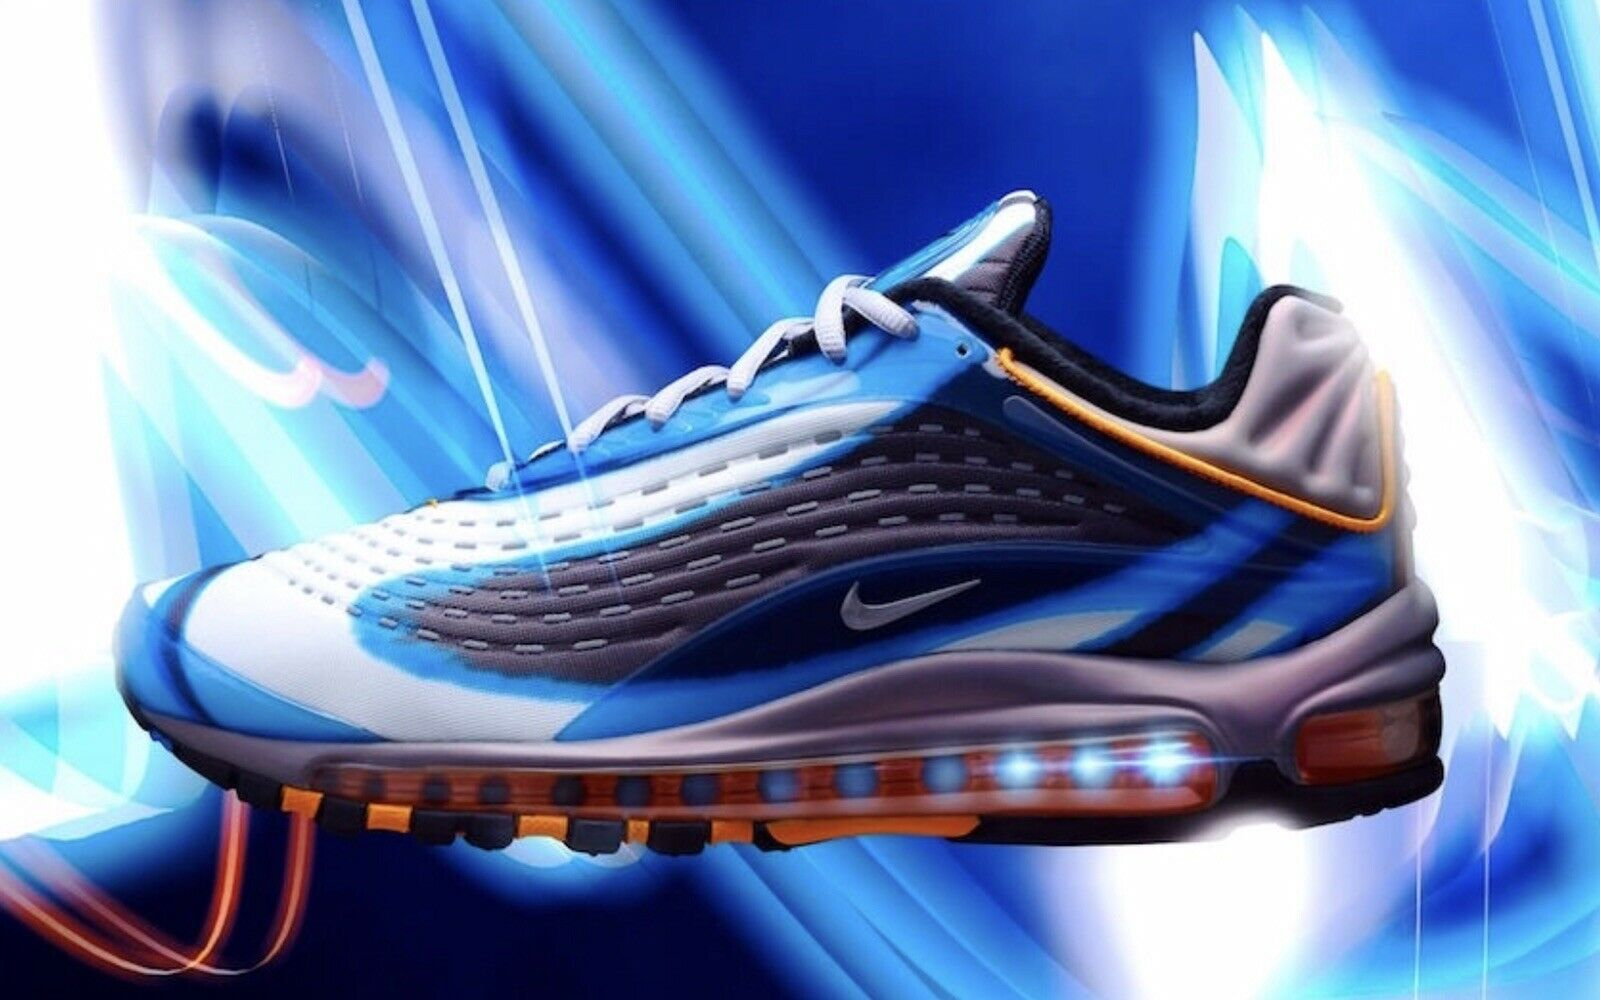 DS MENS NIKE AIR MAX DELUXE PHOTO blueE RUNNING AJ7831 401 SZ 11.5 FREE SHIP